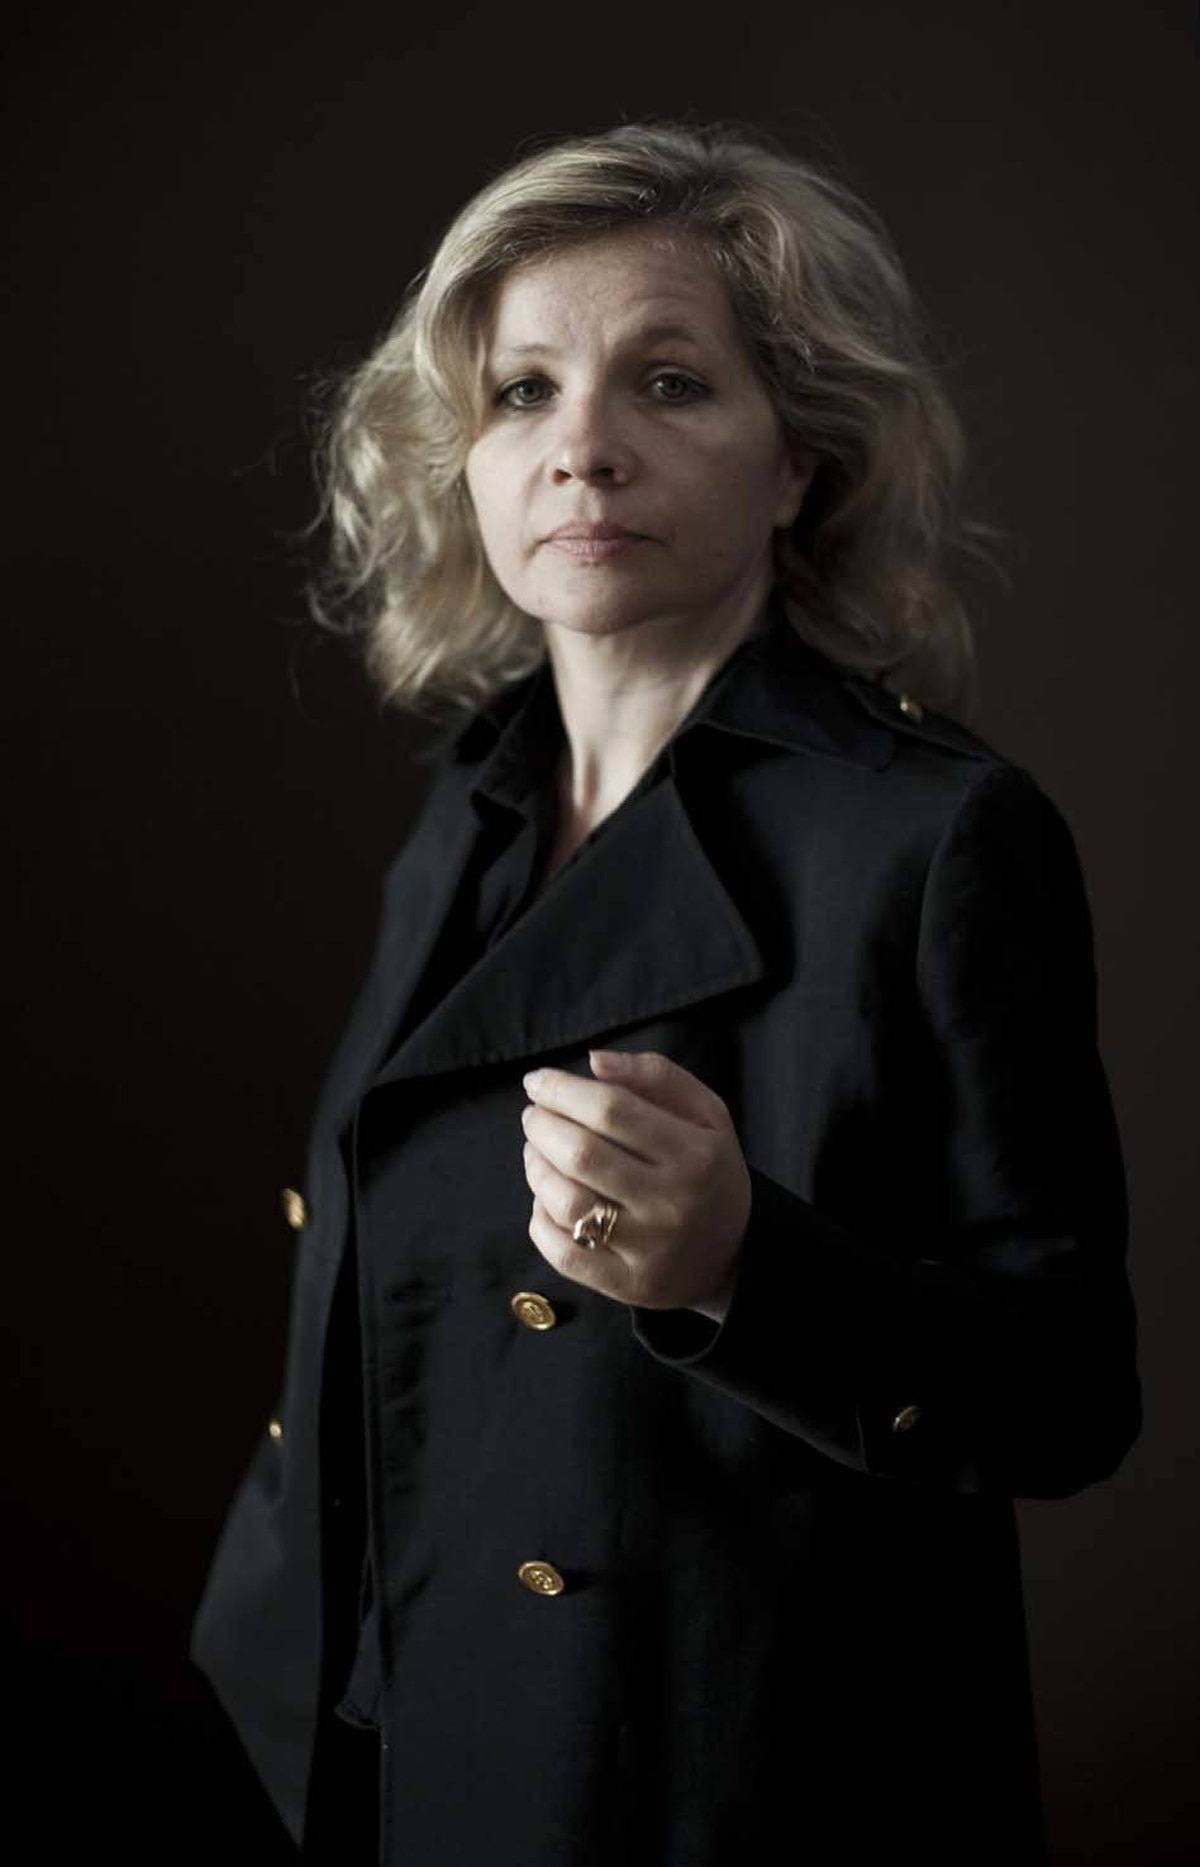 """French director Eva Ionesco poses meaningfully during a photo session to promote her movie """"My Little Princess"""" at the Cannes Film Festival on Tuesday."""